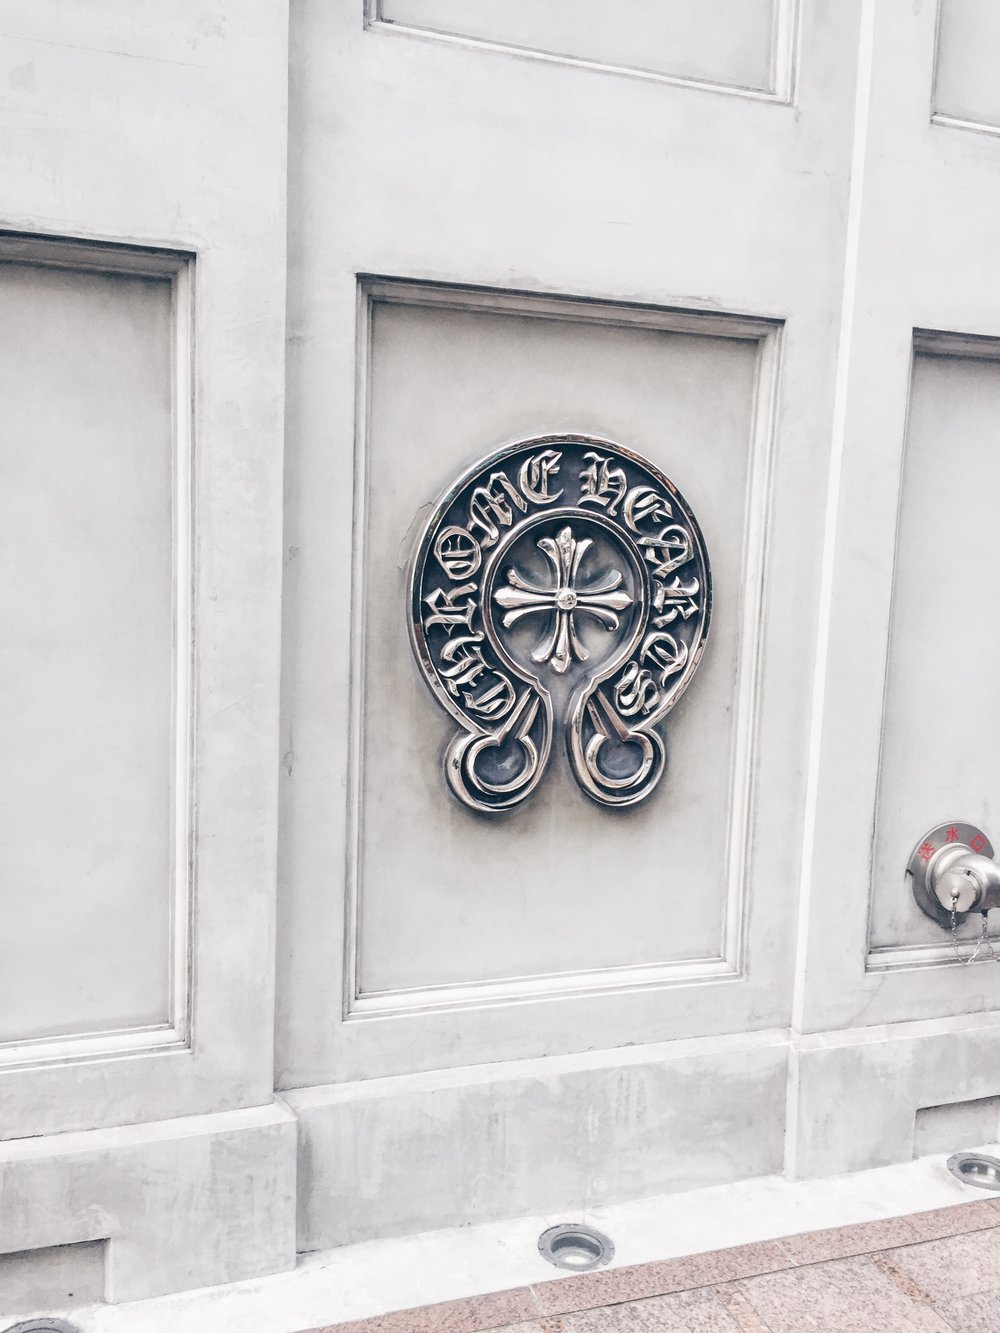 Chrome hearts - Fashion & Lifestyle Spots in Tokyo, Japan - DROP